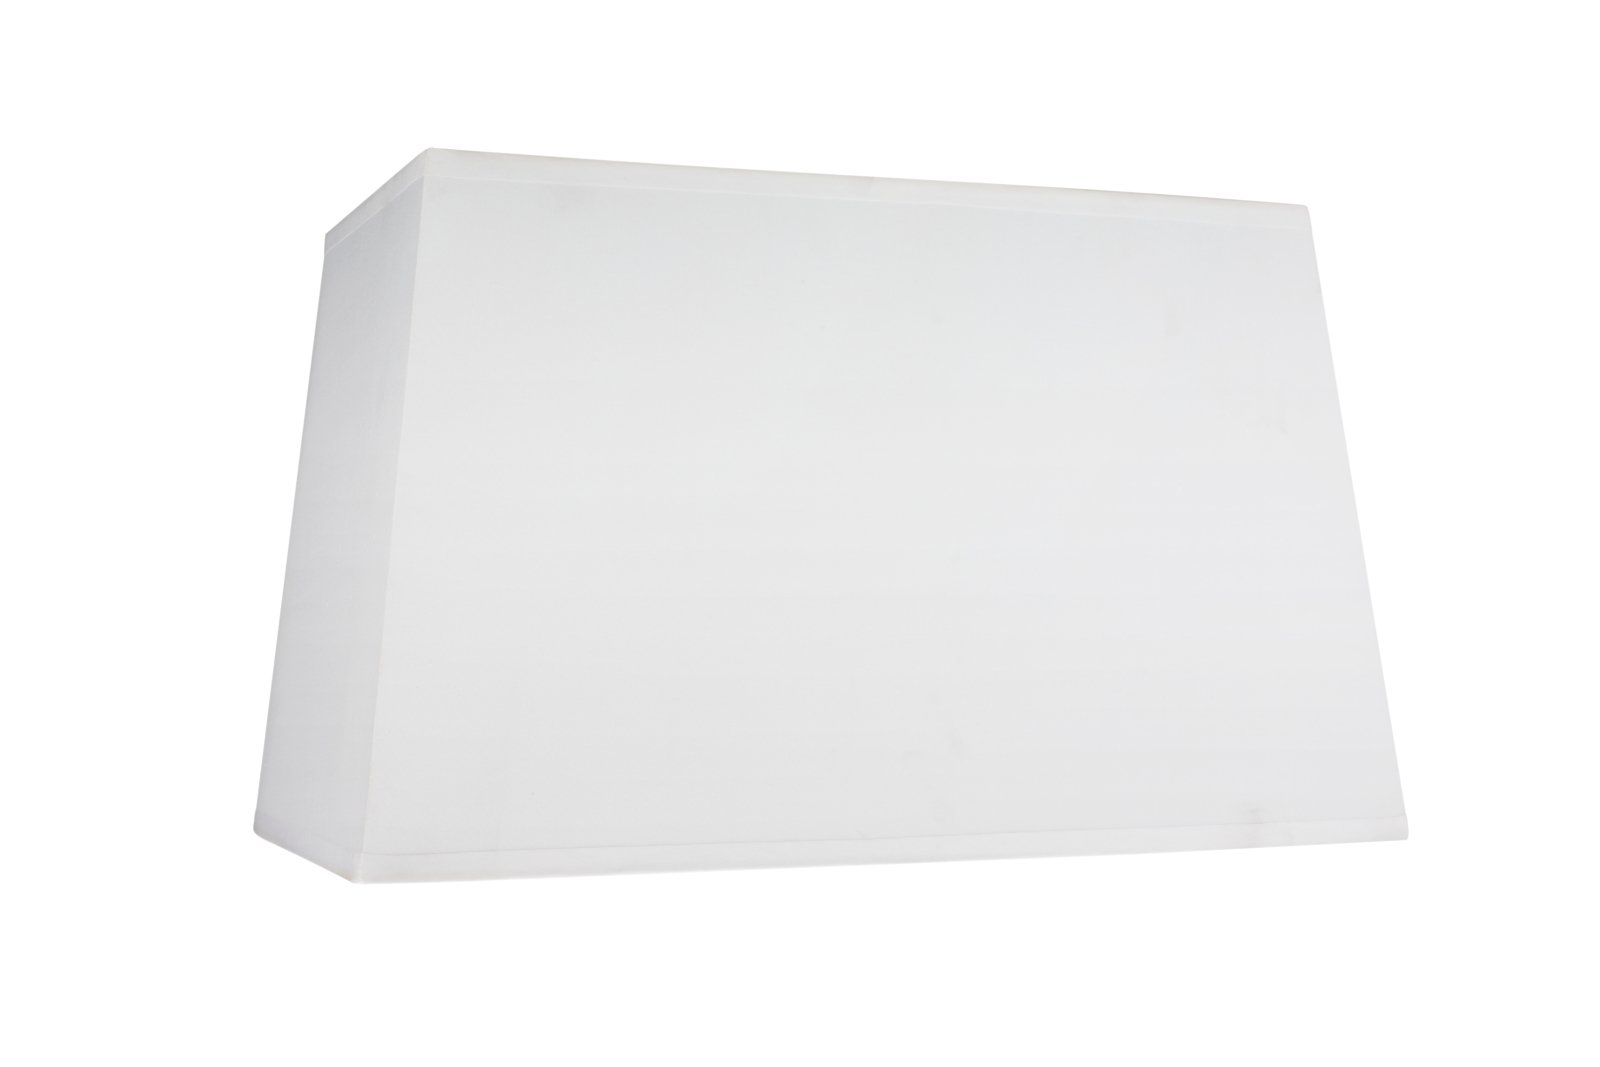 """Aspen Creative 32028 Transitional Rectangle Hardback Shape Spider Construction Lamp Shade in White, 16"""" wide, Top:(8"""" + 14"""") Bottom:(10 + 16"""") x Height: 10"""""""